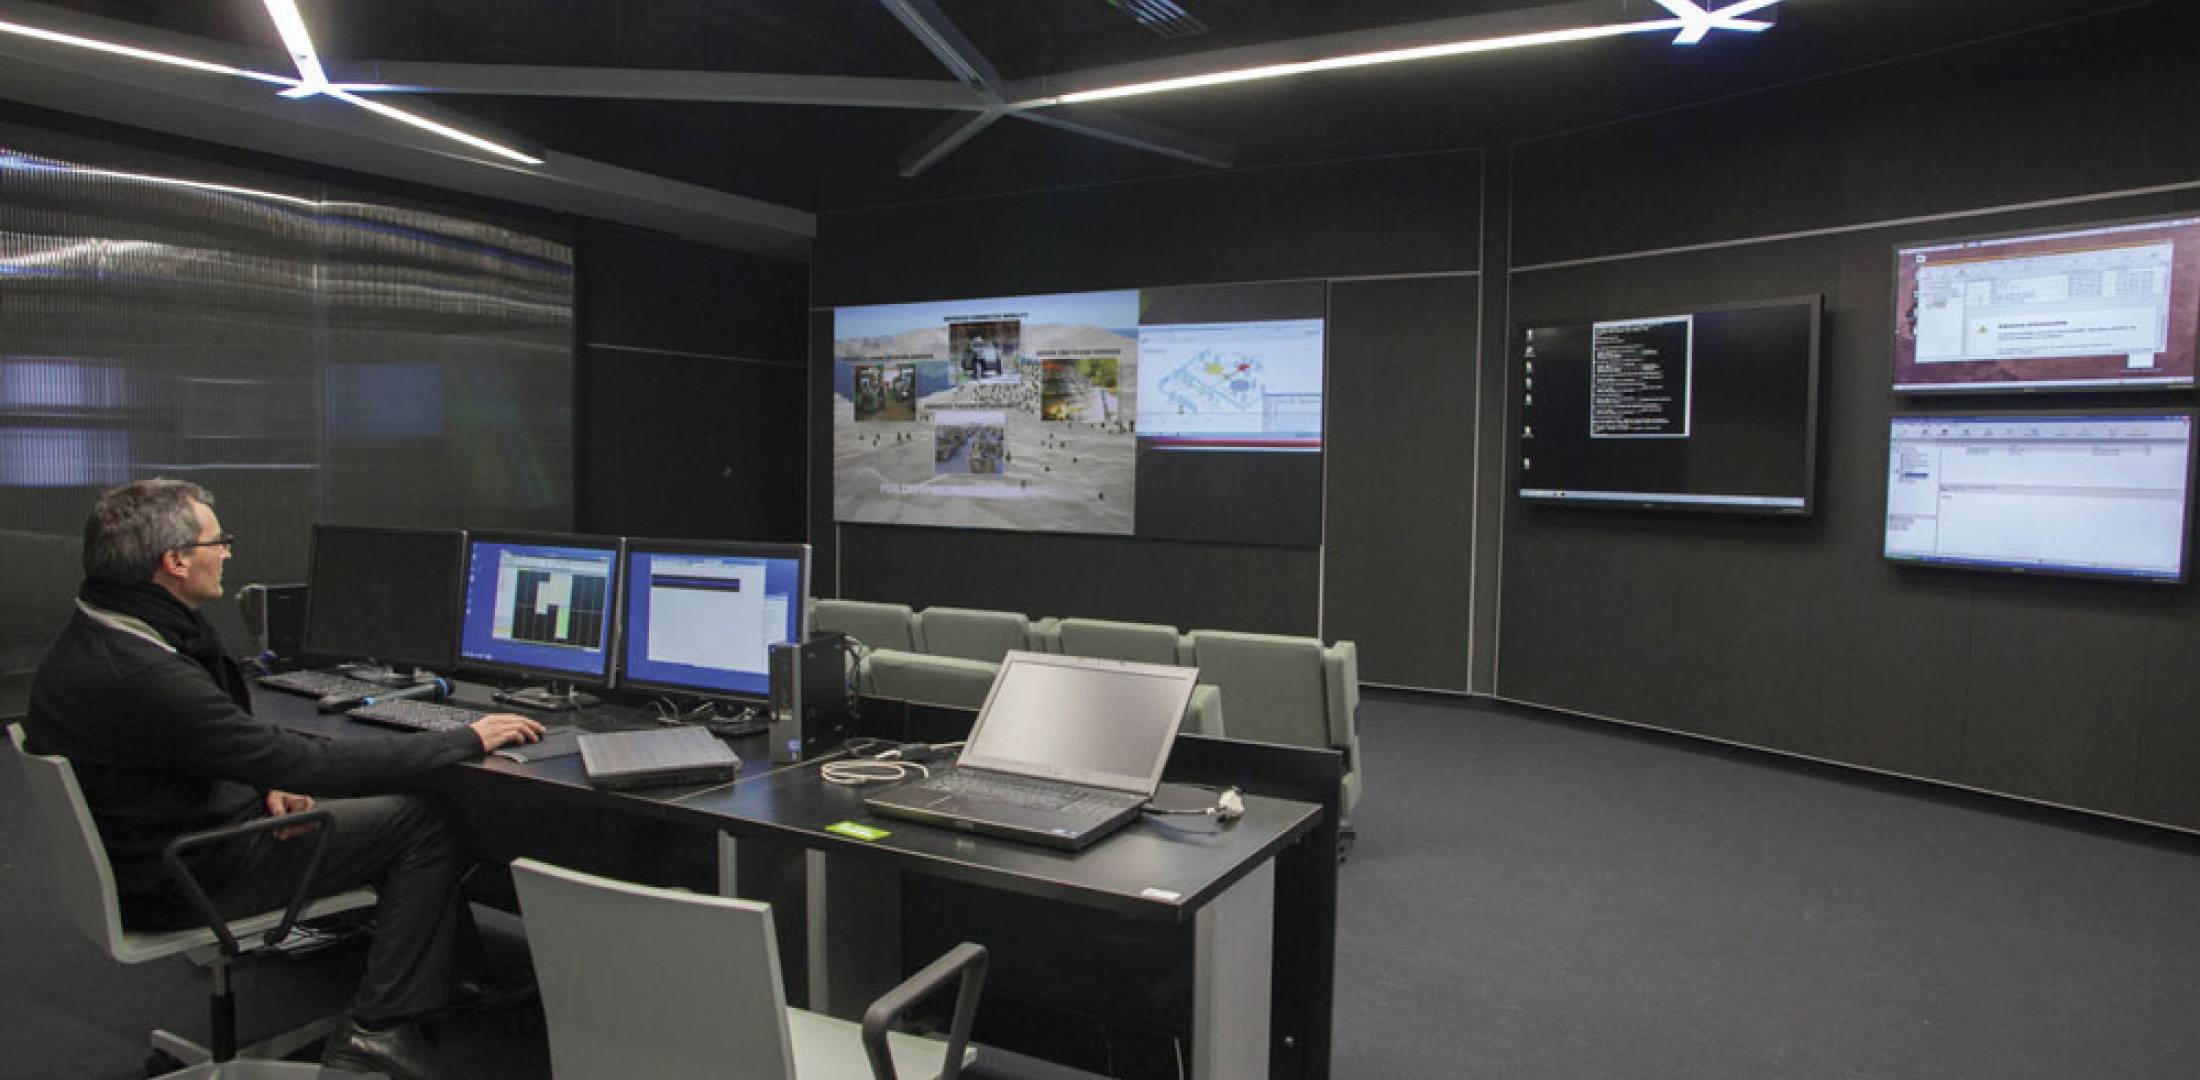 Thales has introduced two new innovation centers where customers can sample the company's products.